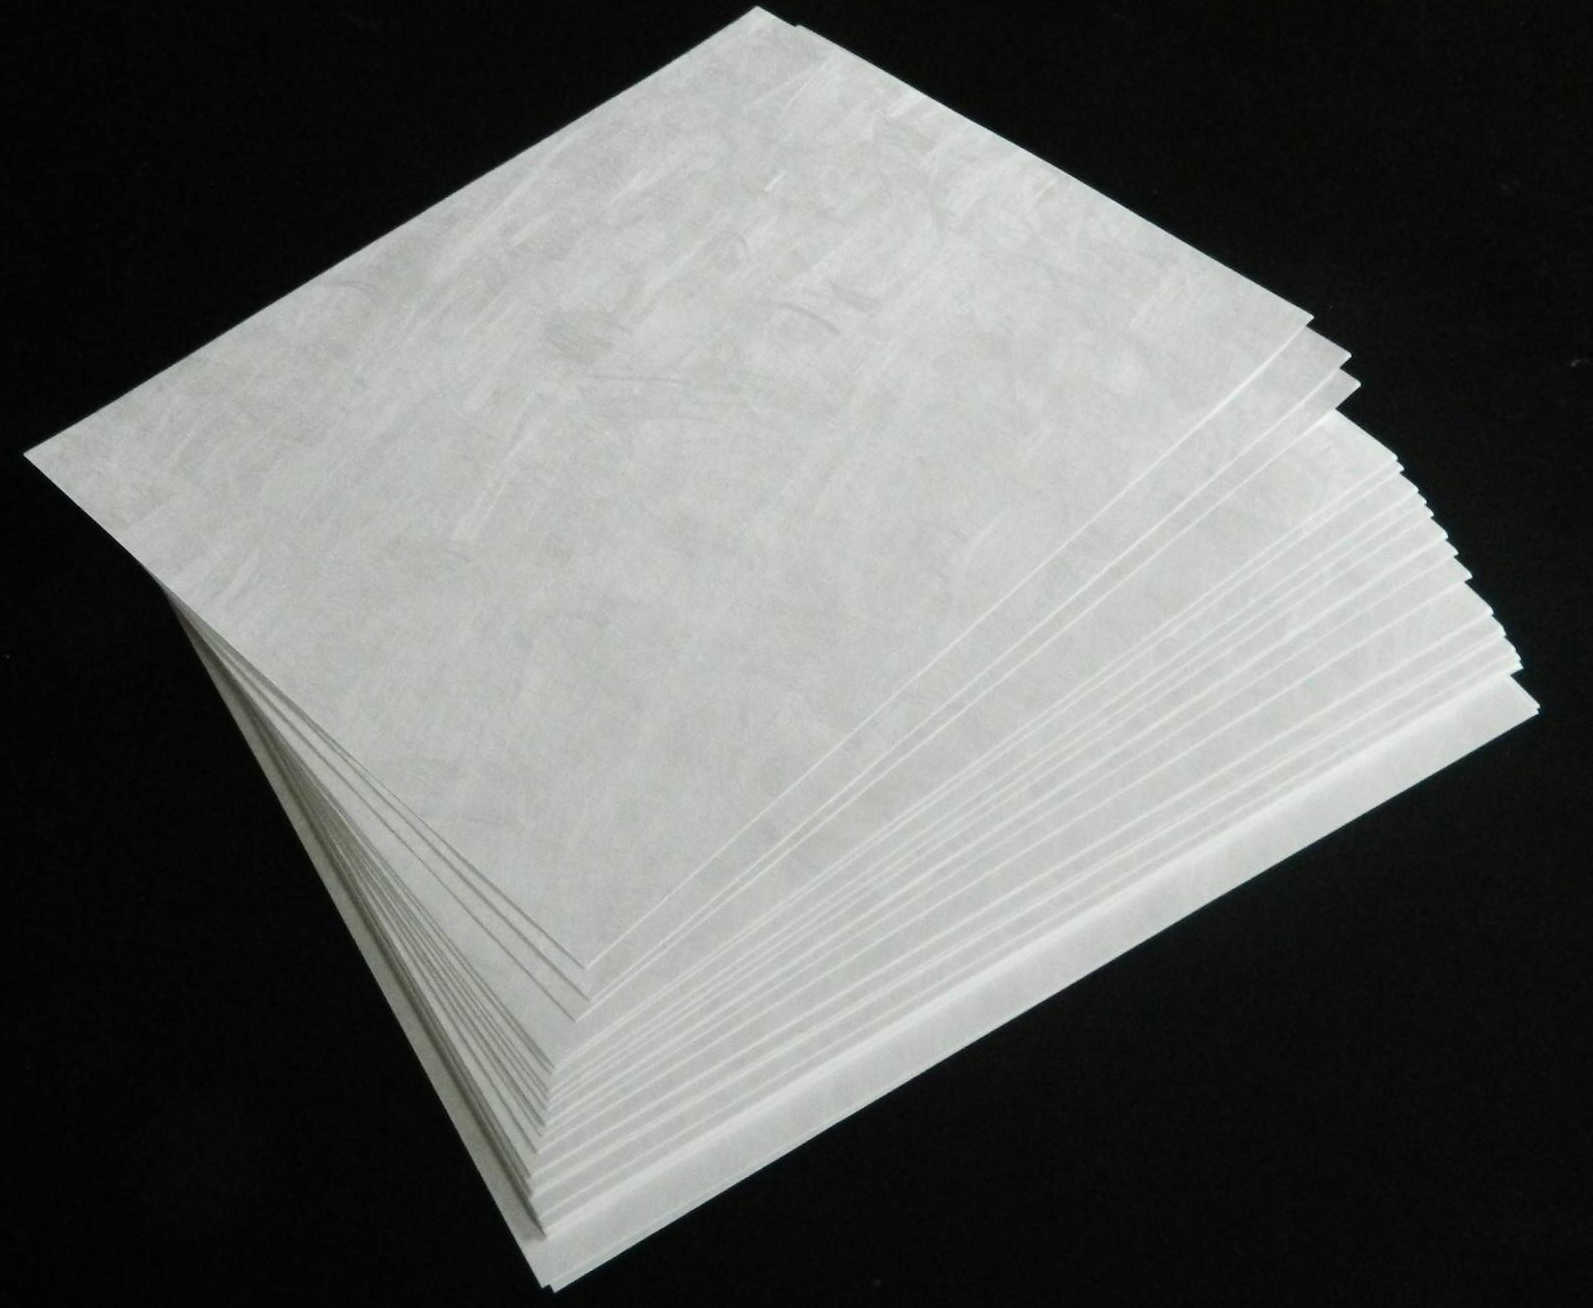 TYVEK Paper 25 Large Sheets 11.5 by 14.5 Craft Paper Thin Waterproof